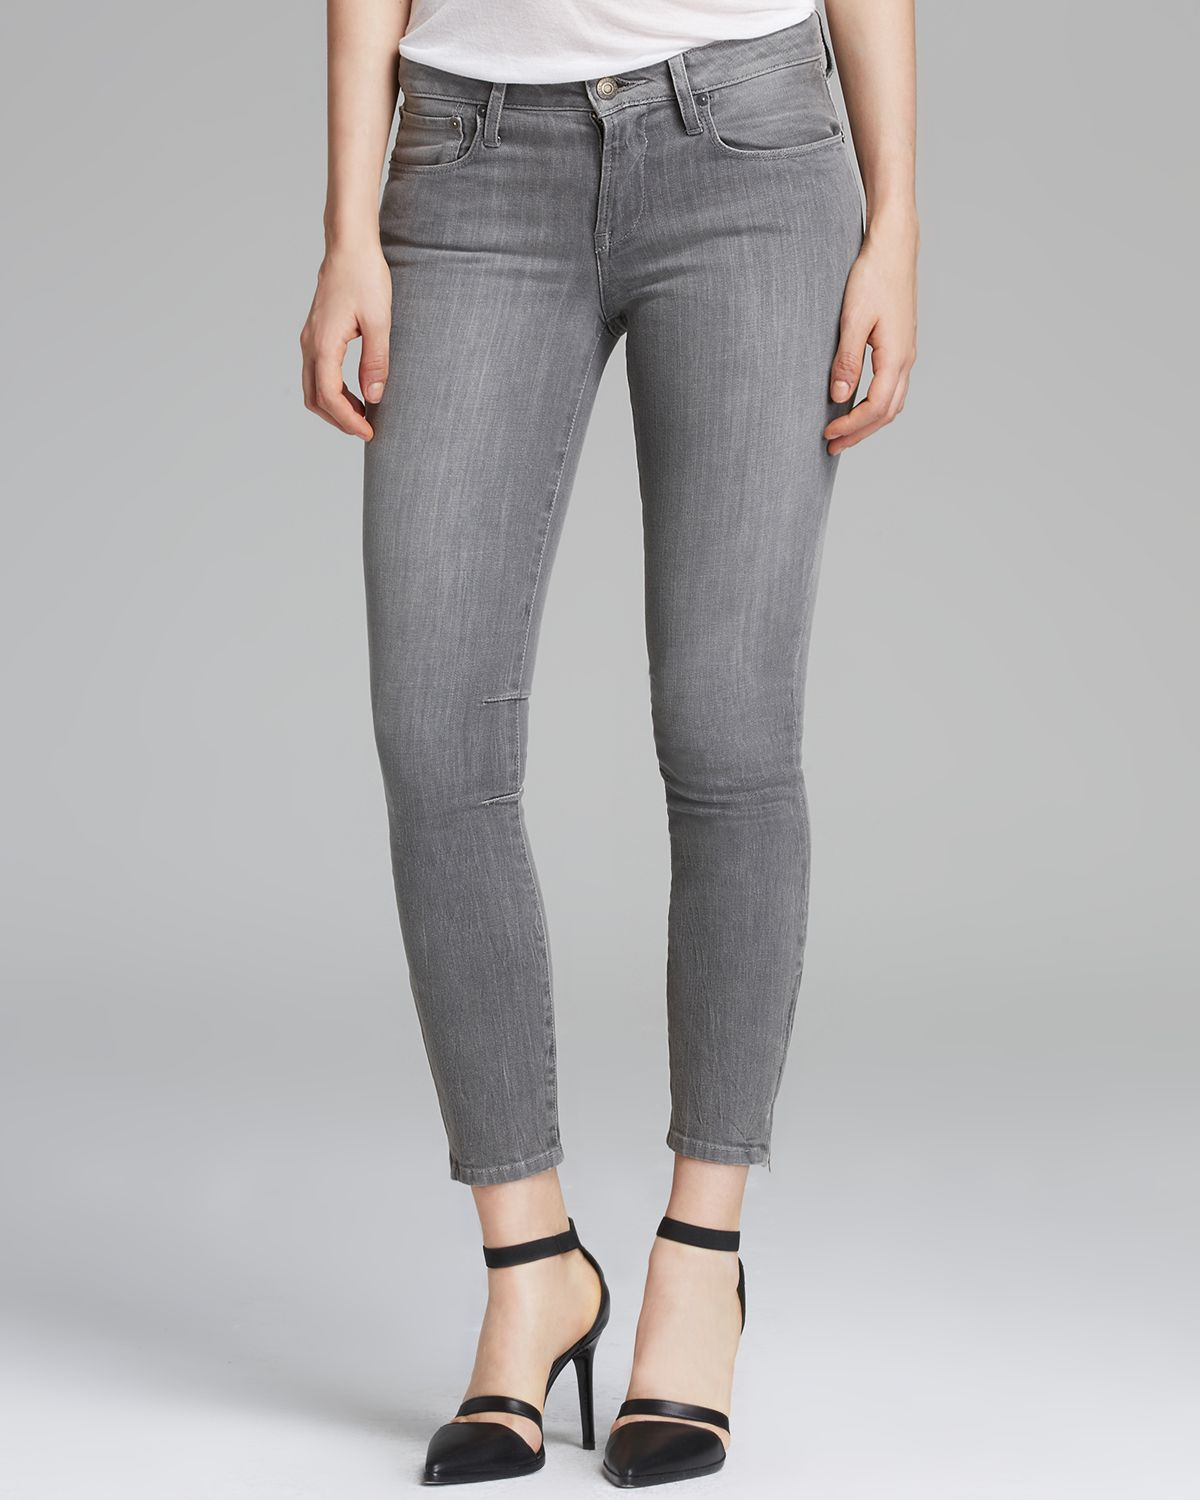 lyst  helmut lang jeans ash crop skinny in dark grey in gray